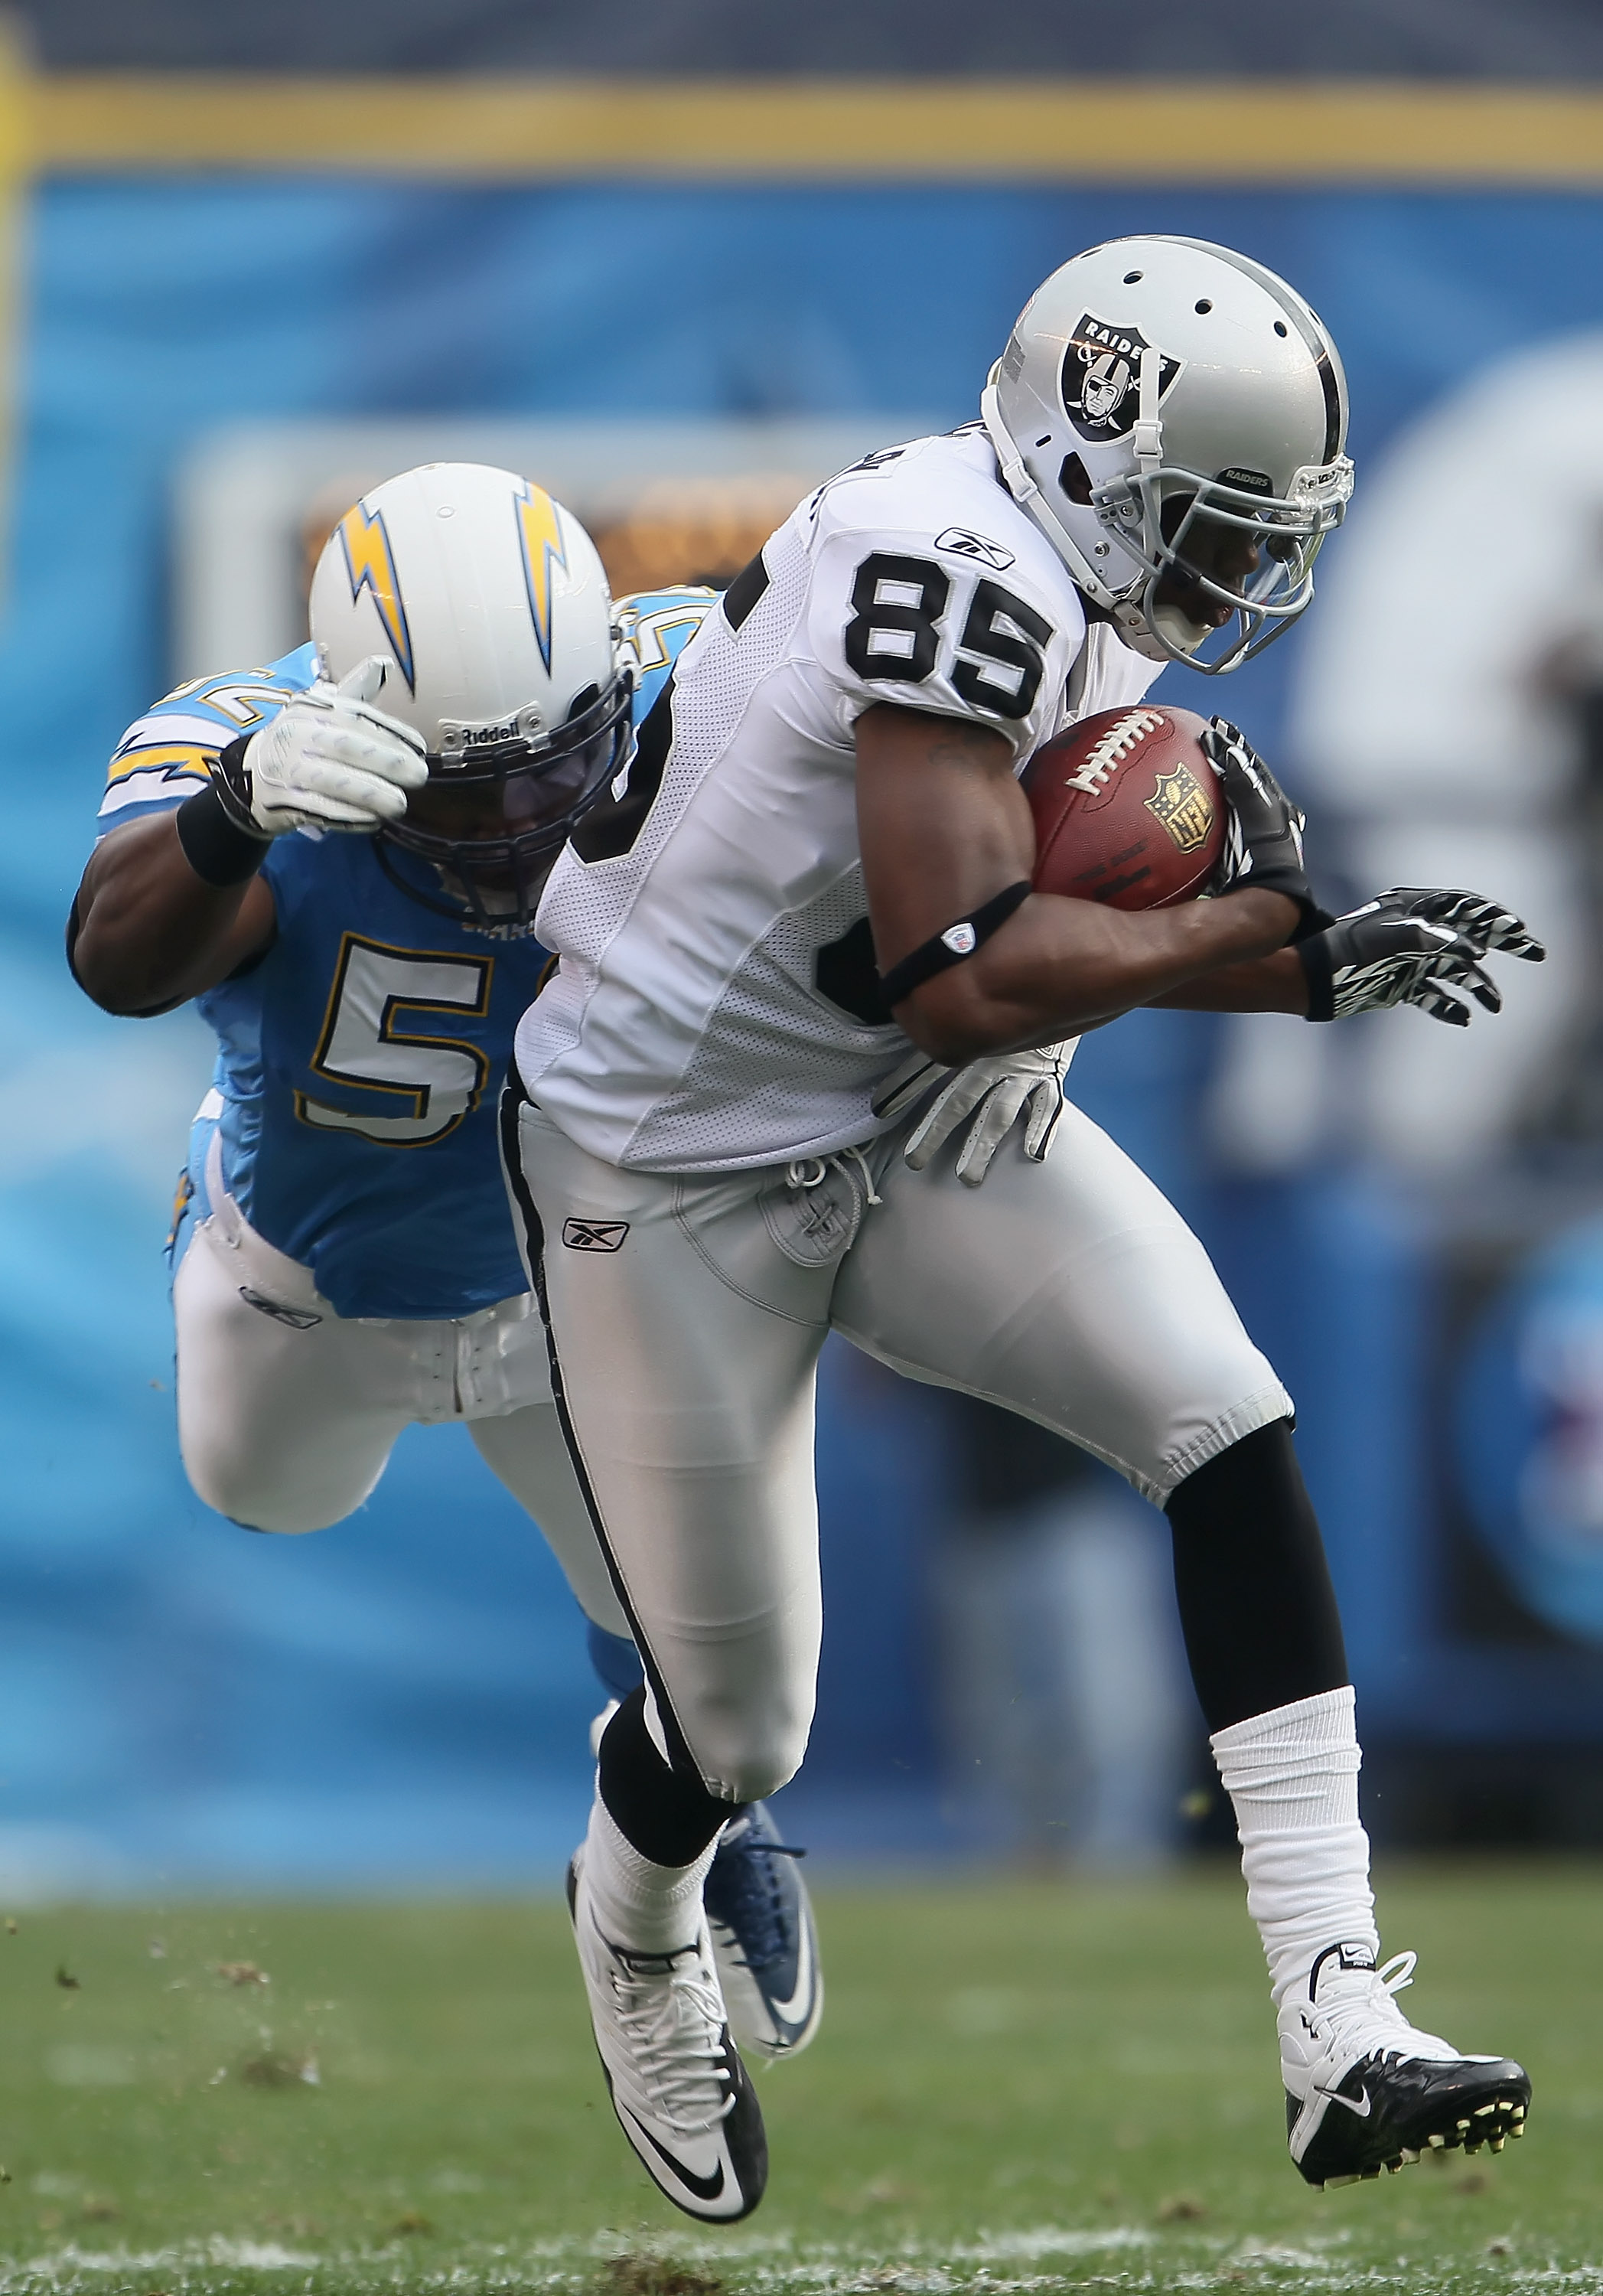 SAN DIEGO - DECEMBER 05:  Darrius Heyward-Bey #85 of the Oakland Raiders is tackled by Larry English #52 of the San Diego Chargers in the second quarter at Qualcomm Stadium on December 5, 2010 in San Diego, California. The Raiders defeated the Chargers 28